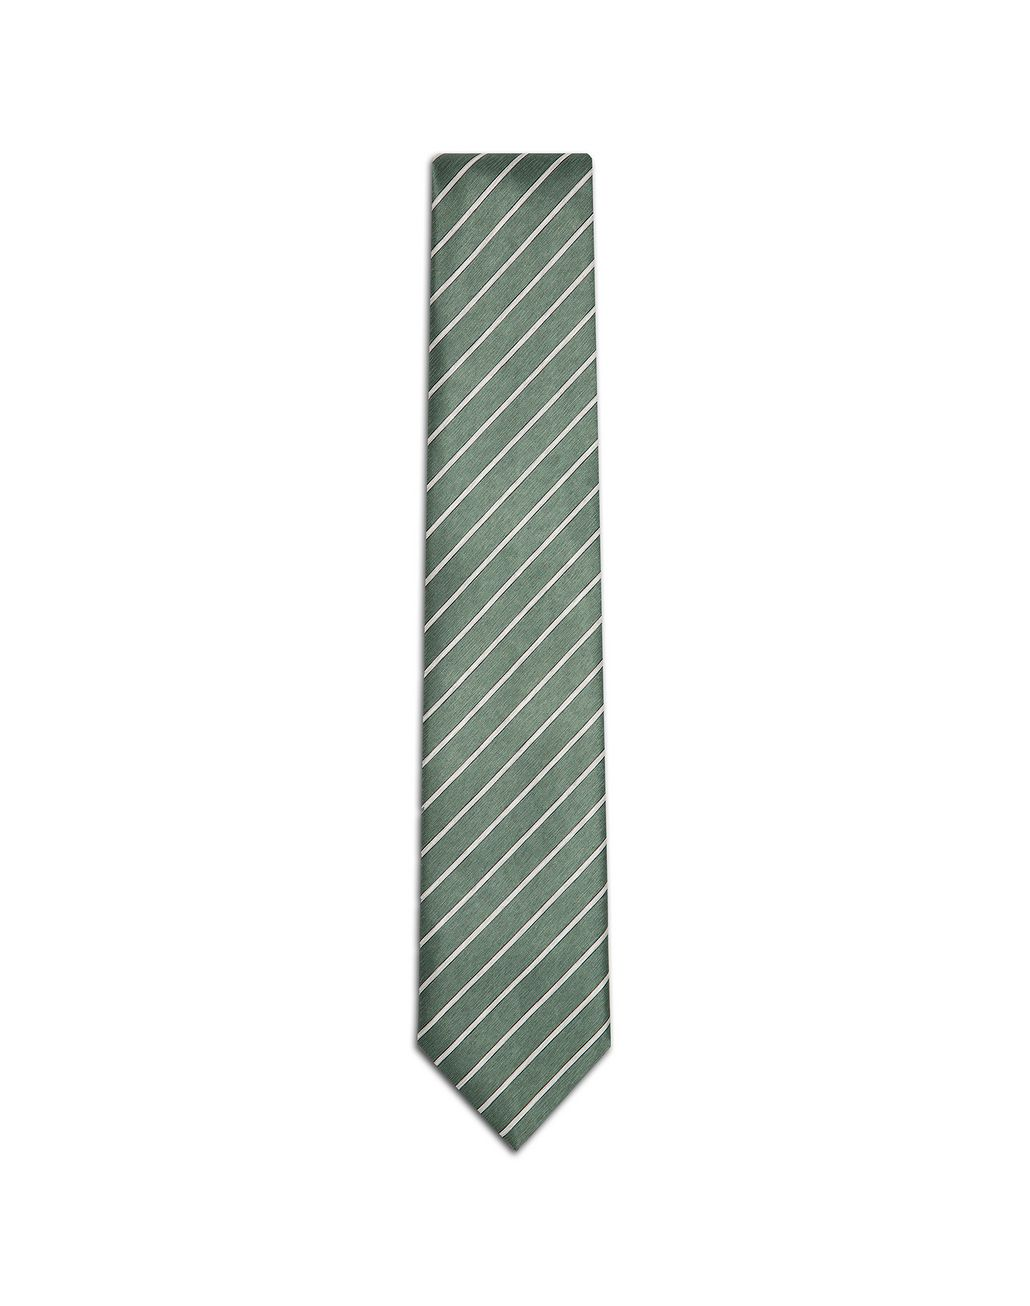 BRIONI Cravatta Regimental Verde Timo e Madreperla Cravatta [*** pickupInStoreShippingNotGuaranteed_info ***] f